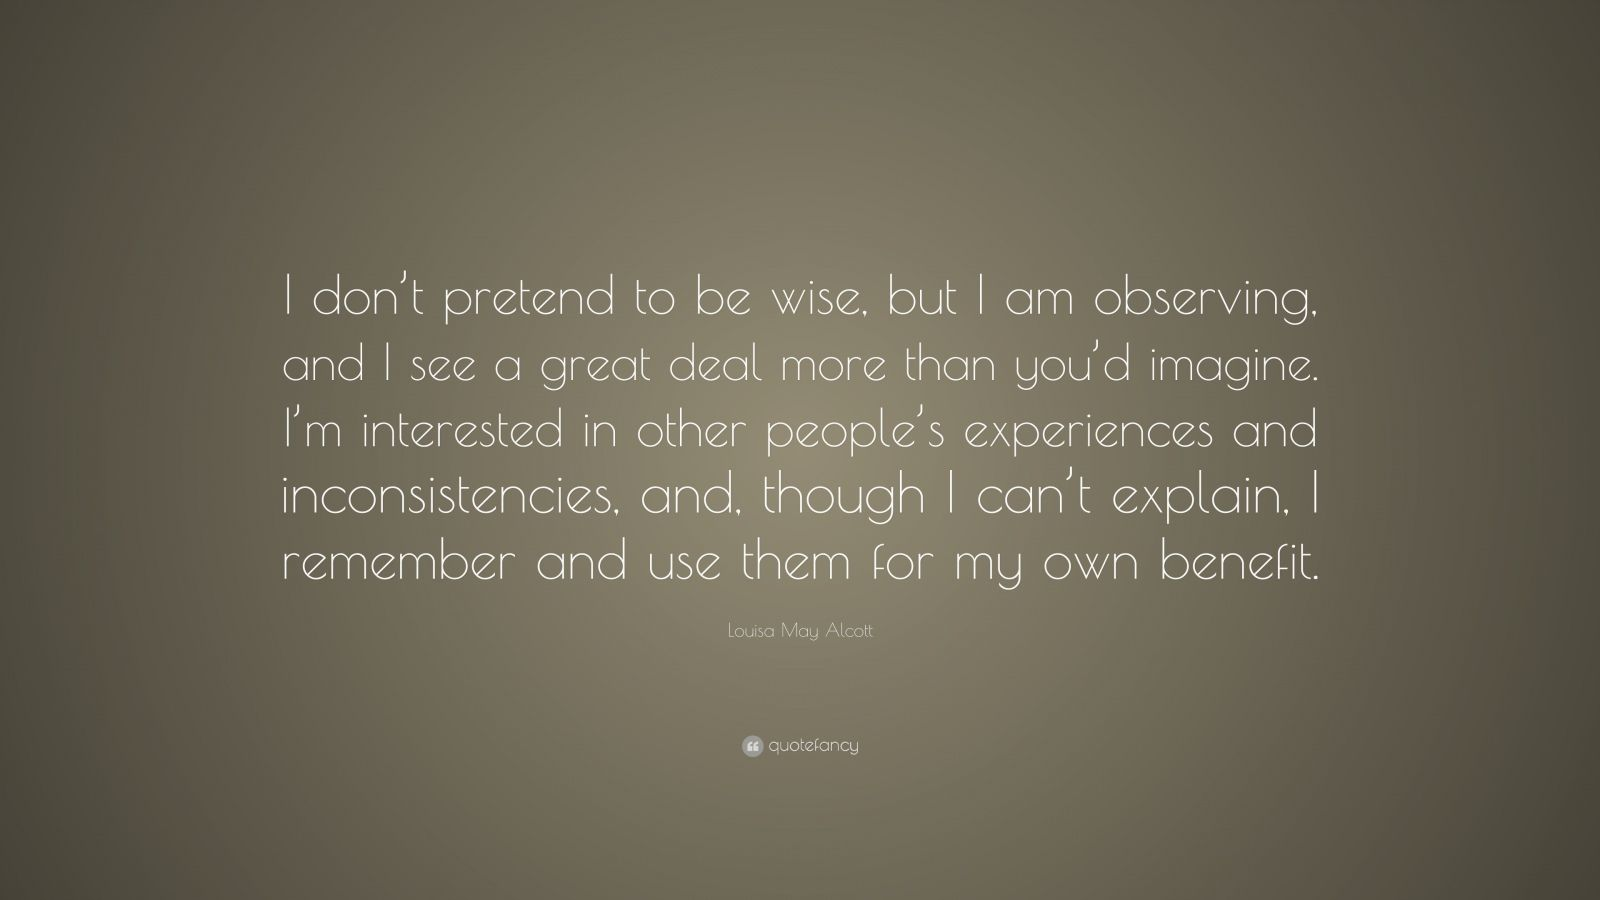 """Louisa May Alcott Quote: """"I don't pretend to be wise, but I am observing, and I see a great deal more than you'd imagine. I'm interested in other people's experiences and inconsistencies, and, though I can't explain, I remember and use them for my own benefit."""""""